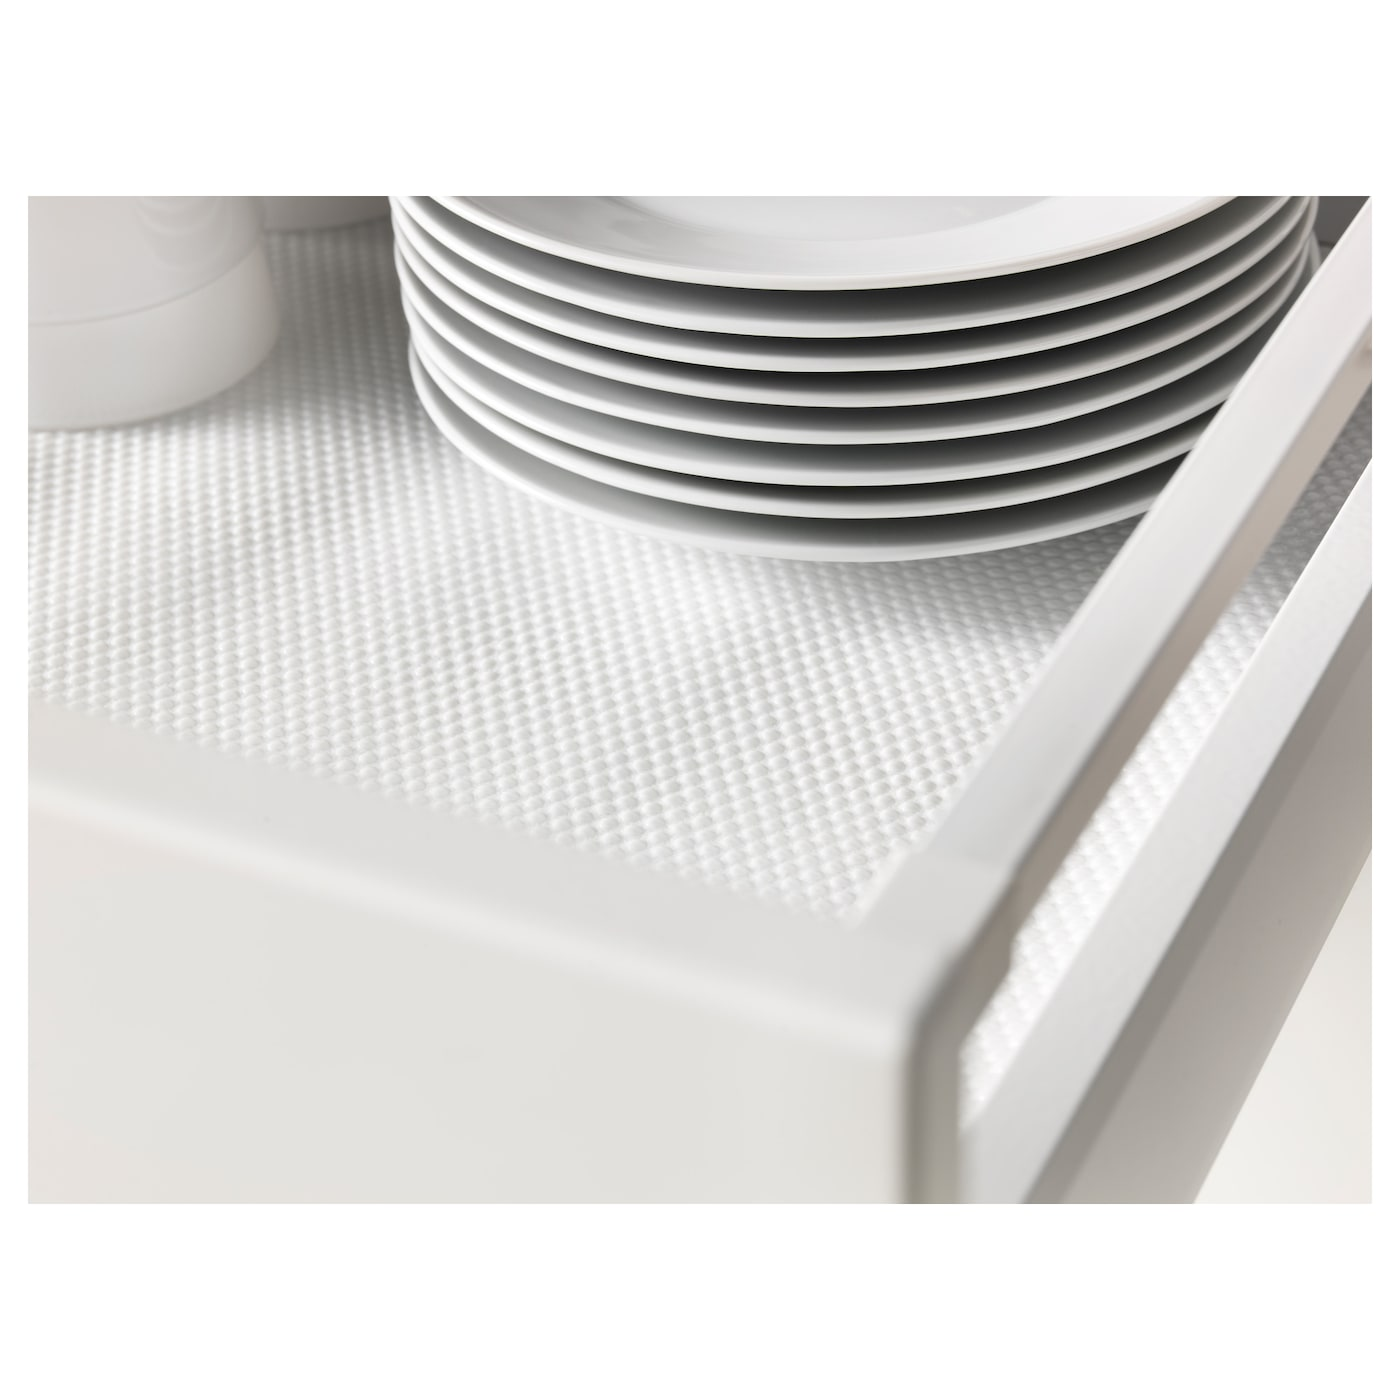 ikea variera drawer mat dampens sounds and protects drawers and